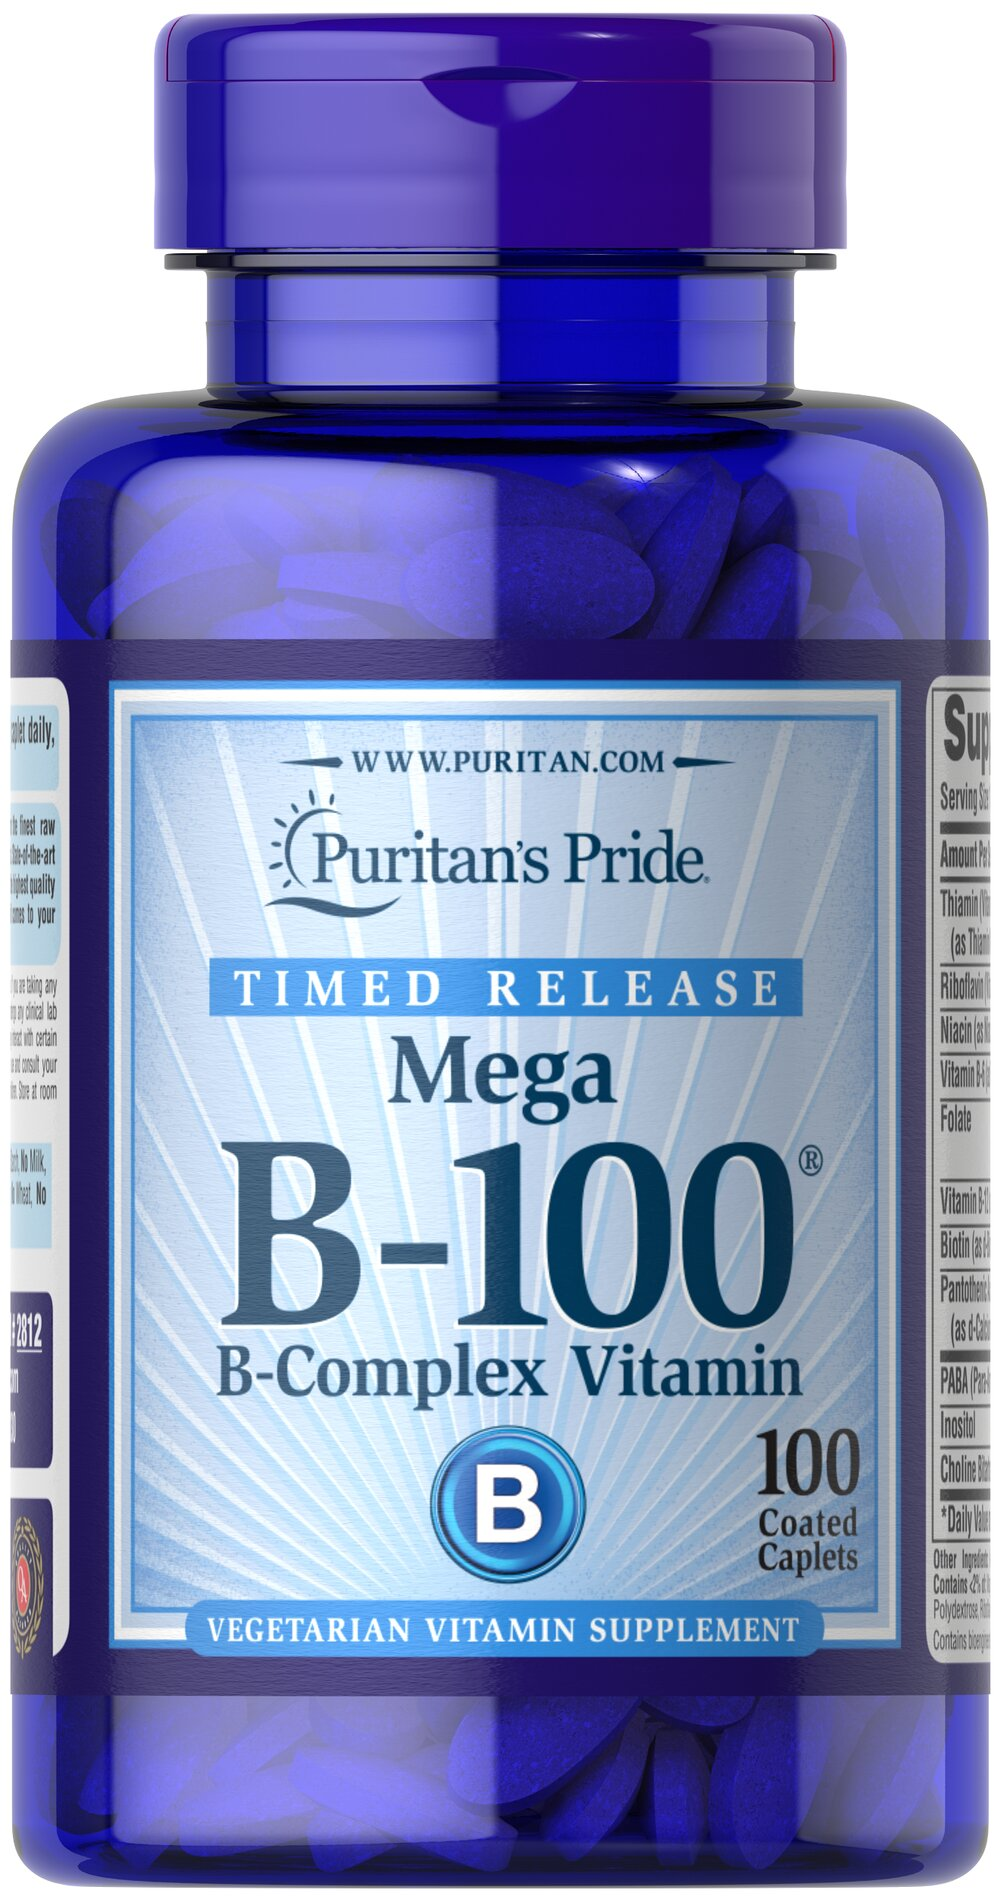 Vitamin B-100® Complex Timed Release <p>Each nutrient in the Vitamin B-100® Complex performs a unique role in maintaining proper metabolic functioning and is essential for well being.** When taken together in a complex formula, the B Vitamins help to maintain the health of the nervous system, skin, eyes and hair.** This product is specially formulated to provide a gradual release of vitamins over a prolonged period of time.</p>  100 Tablets 100 mg $25.58